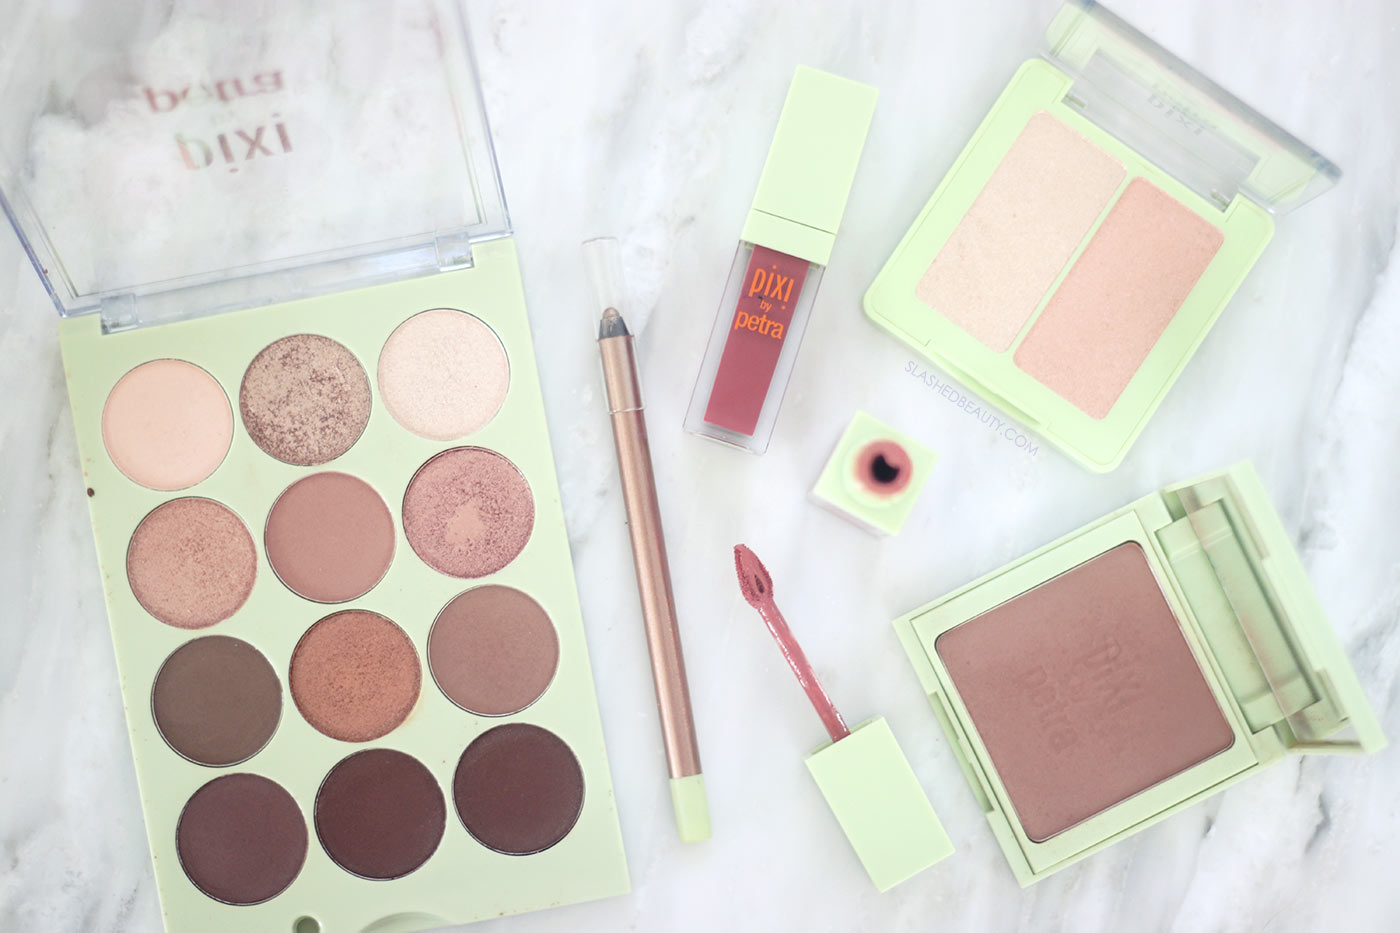 The Best of Pixi Beauty Makeup | What are the best Pixi Makeup products? | Slashed Beauty